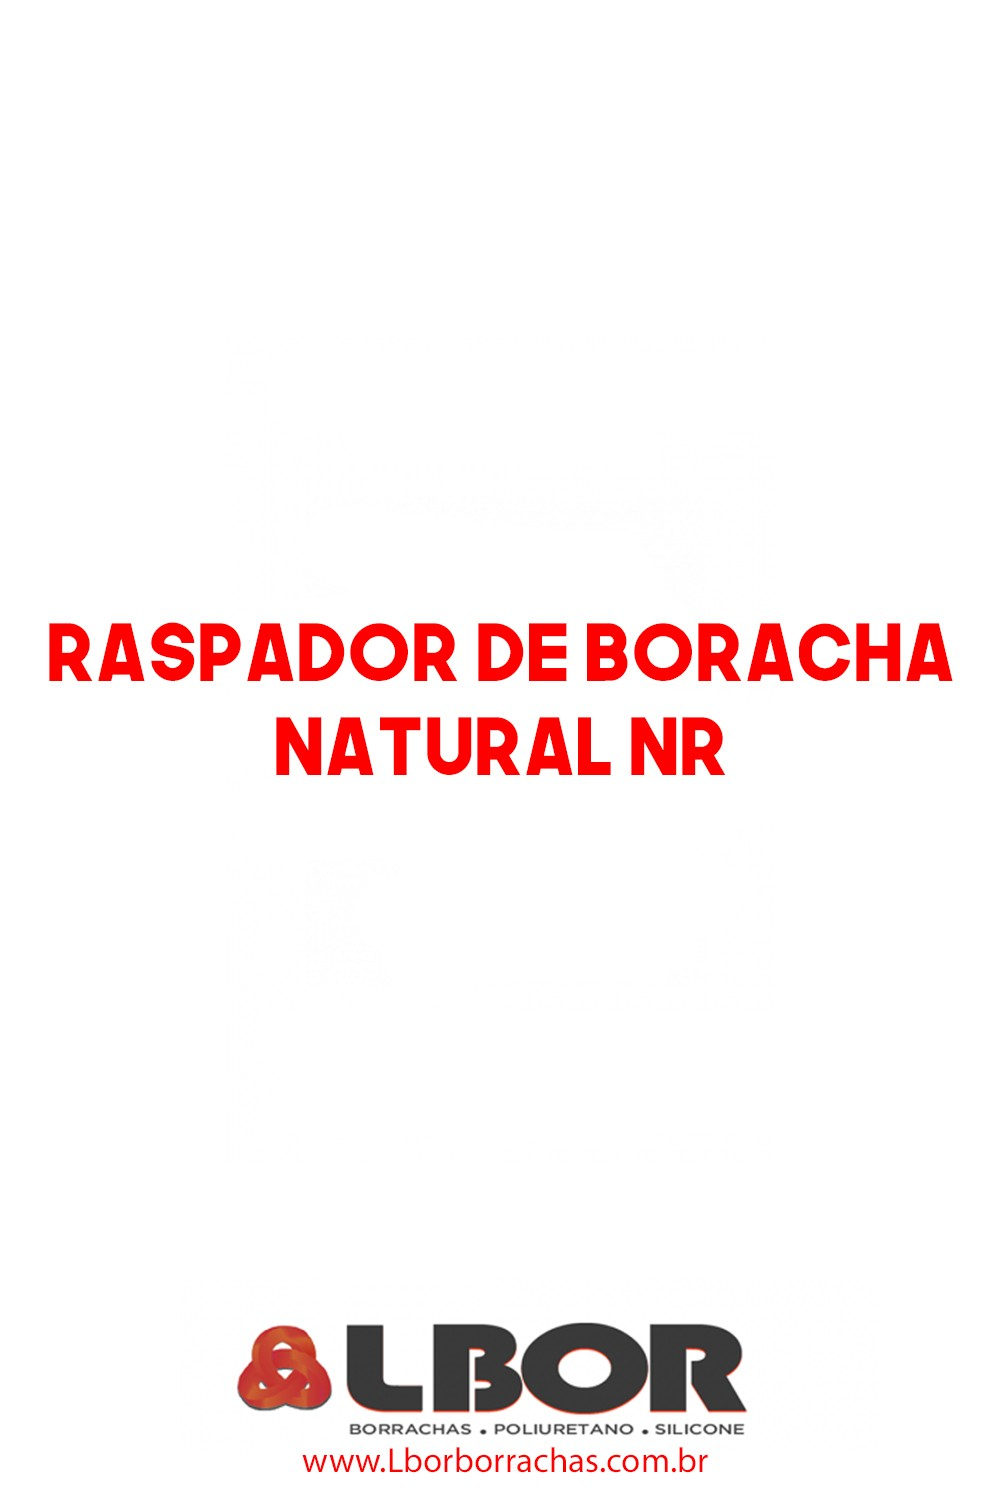 Raspador De Borracha Natural NR